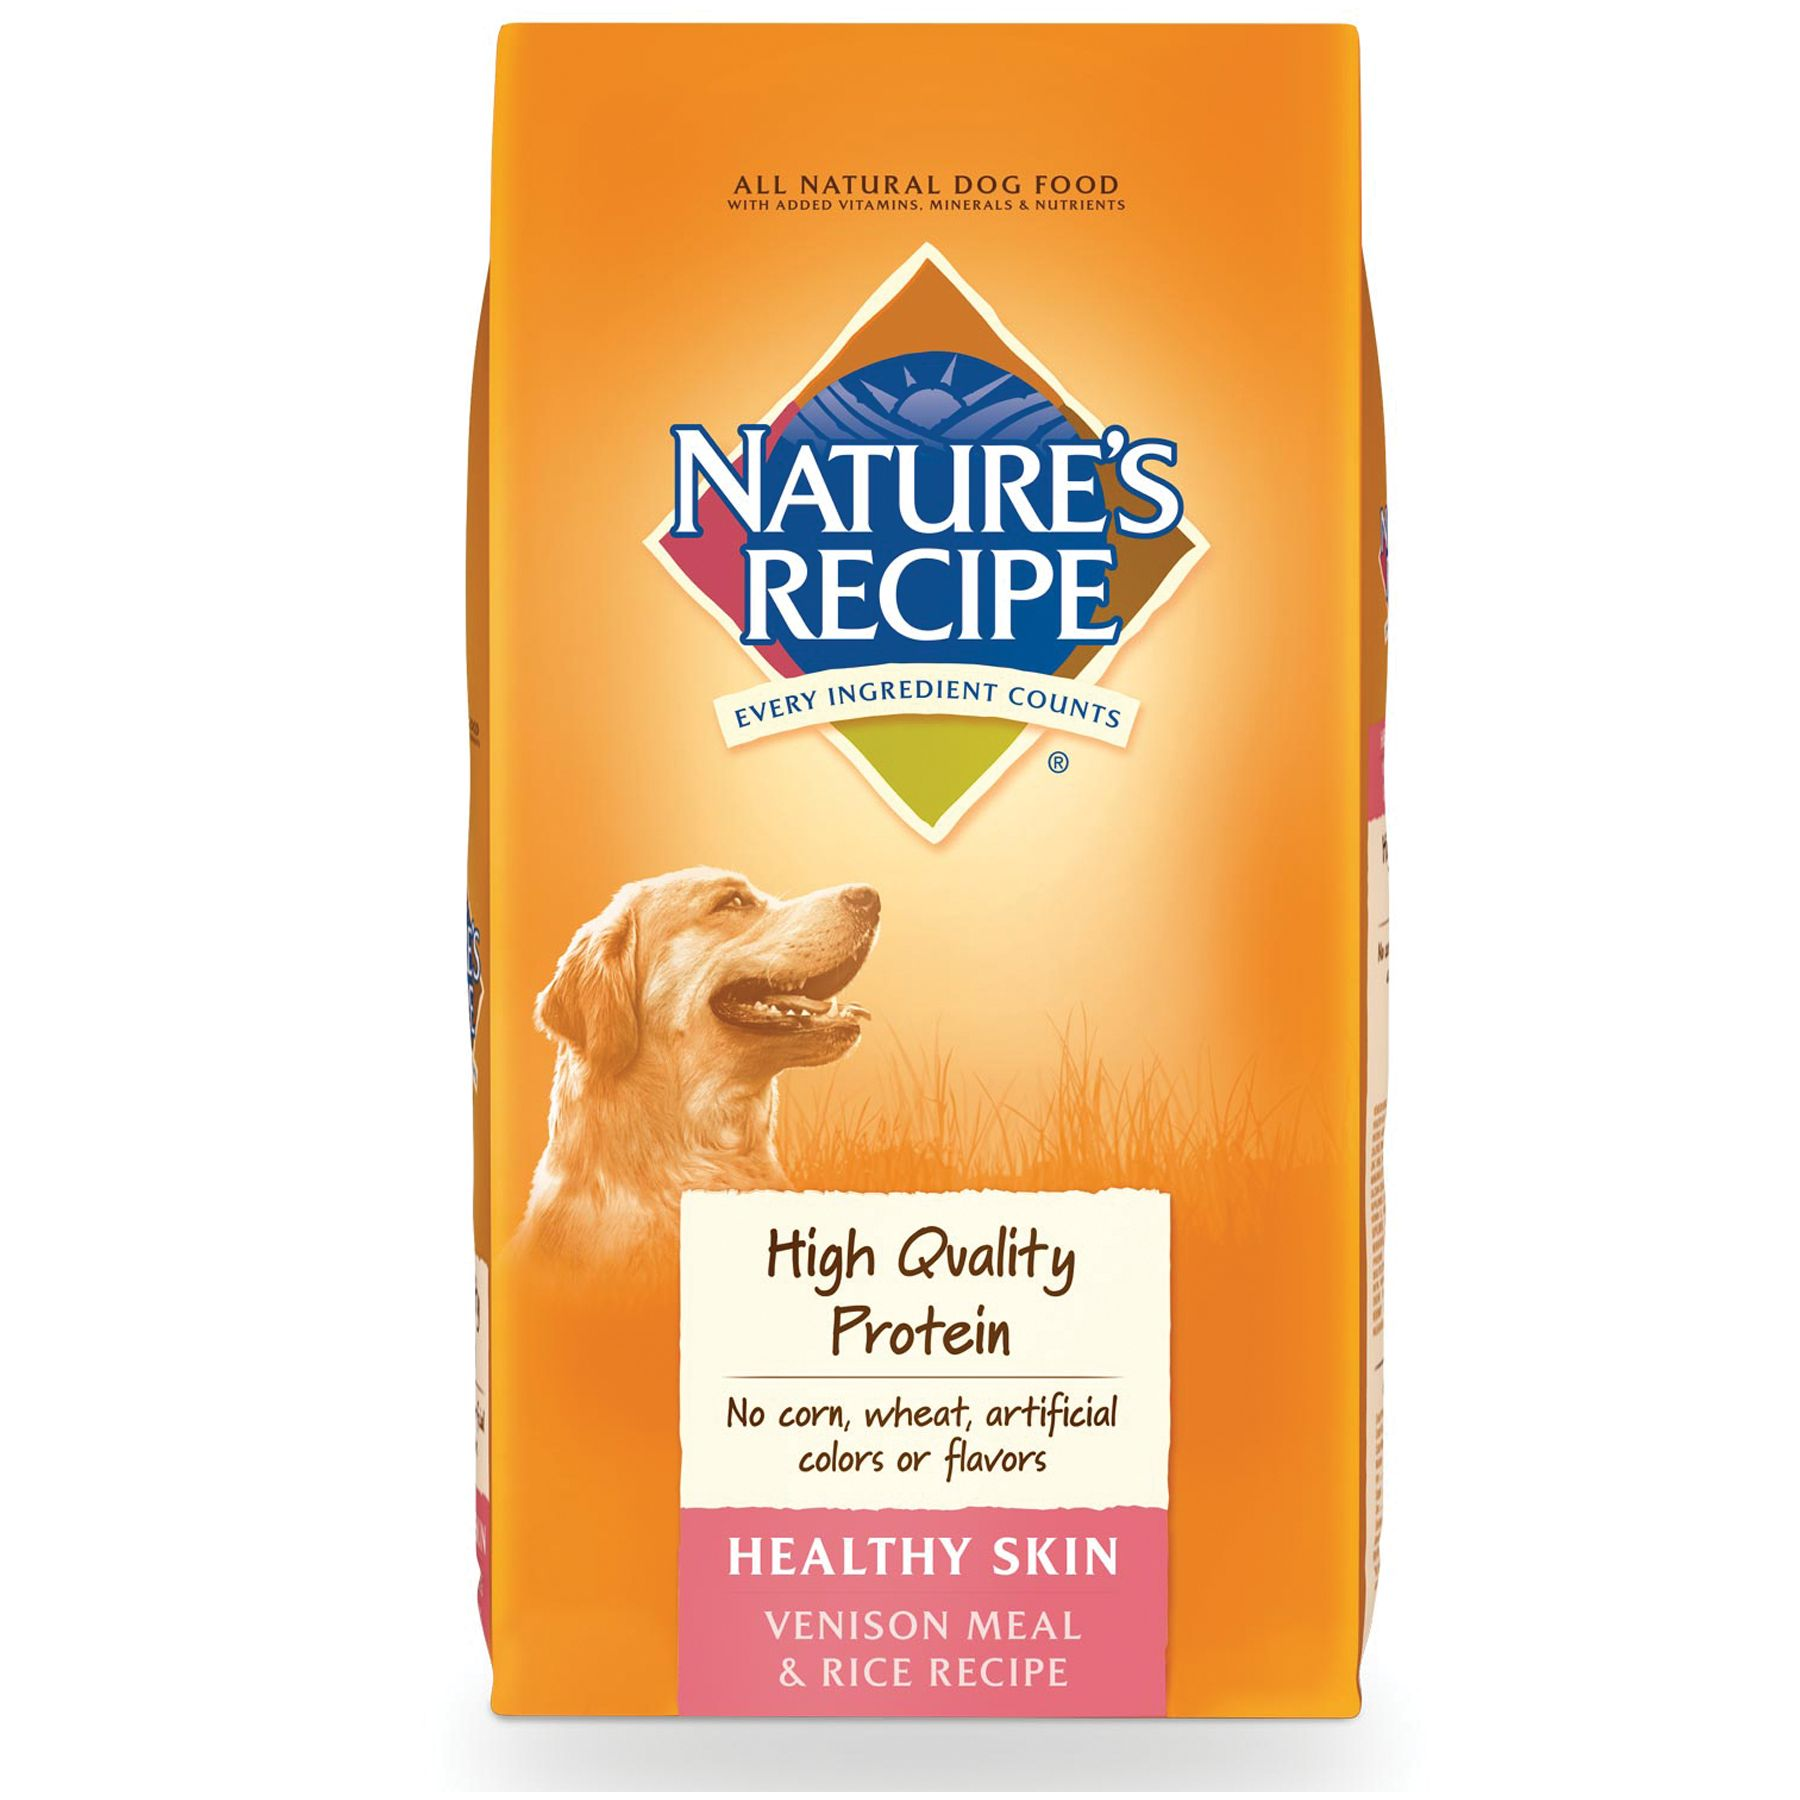 Nature's Recipe Healthy Skin Adult Dog Food size: 30 Lb, Venison Meal and Rice, Kibble